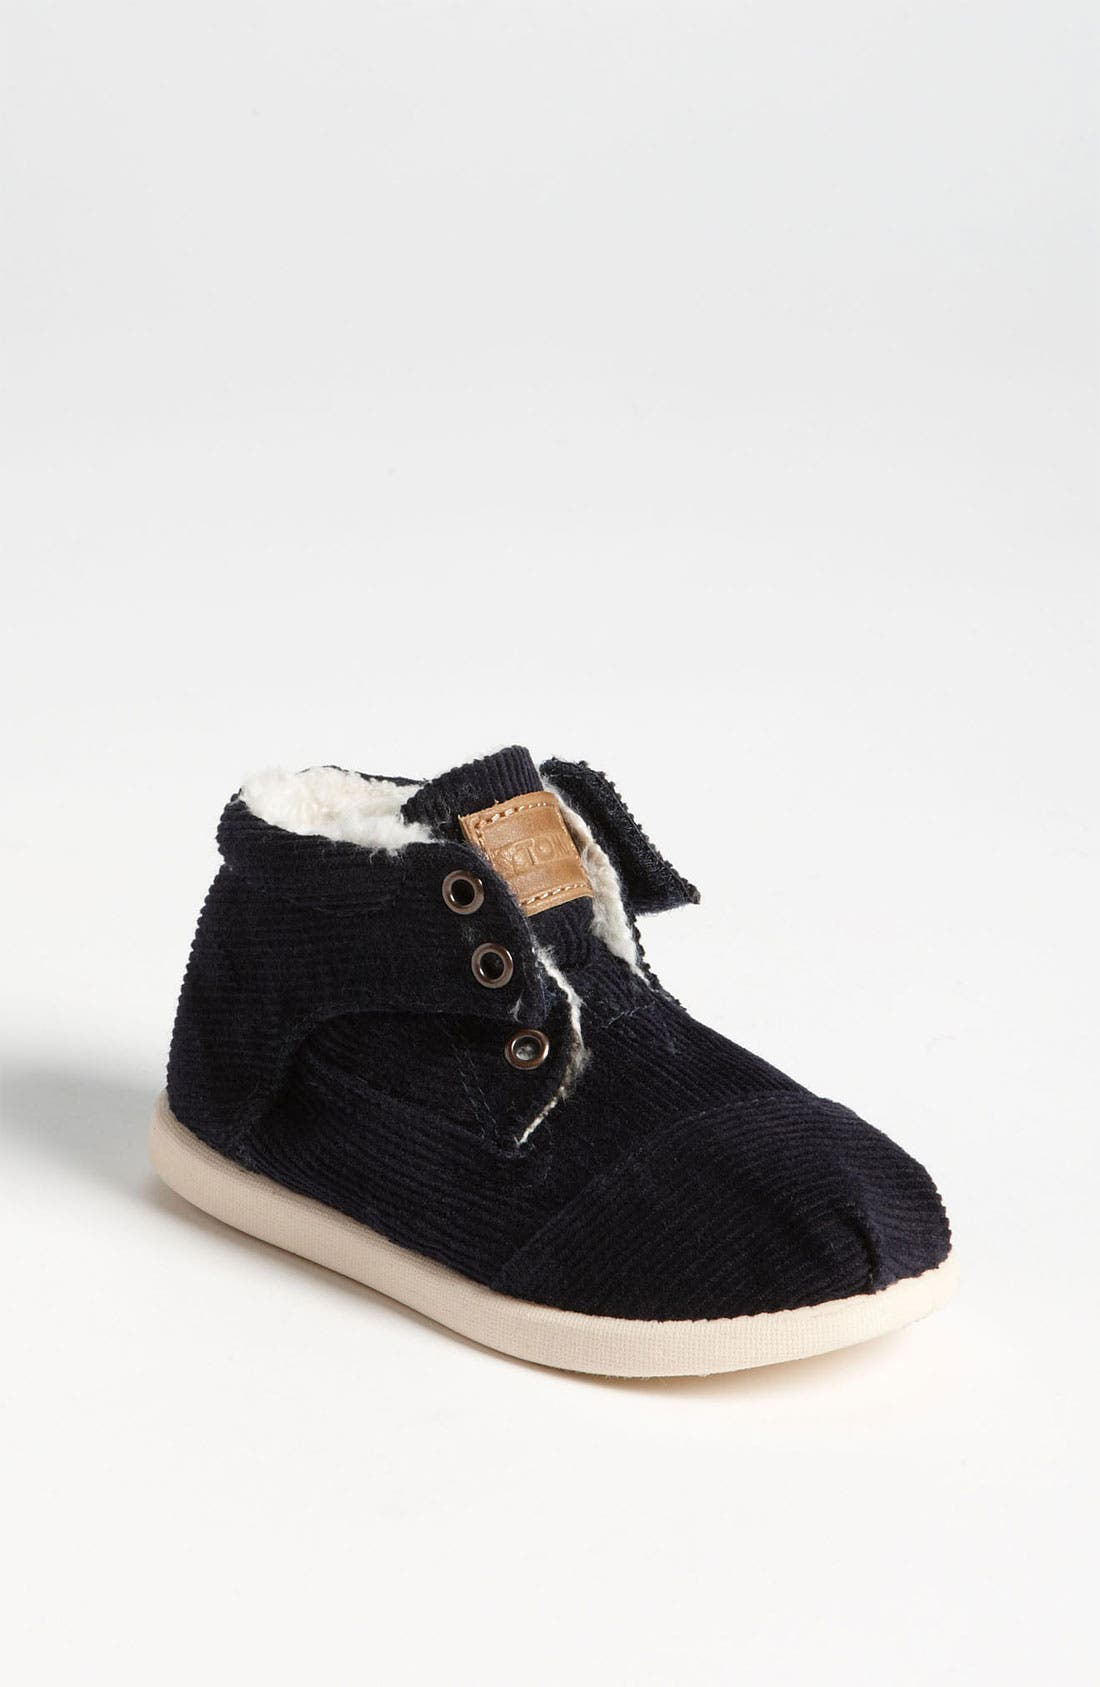 Alternate Image 1 Selected - TOMS 'Botas - Tiny' Corduroy Boot (Baby, Walker & Toddler)